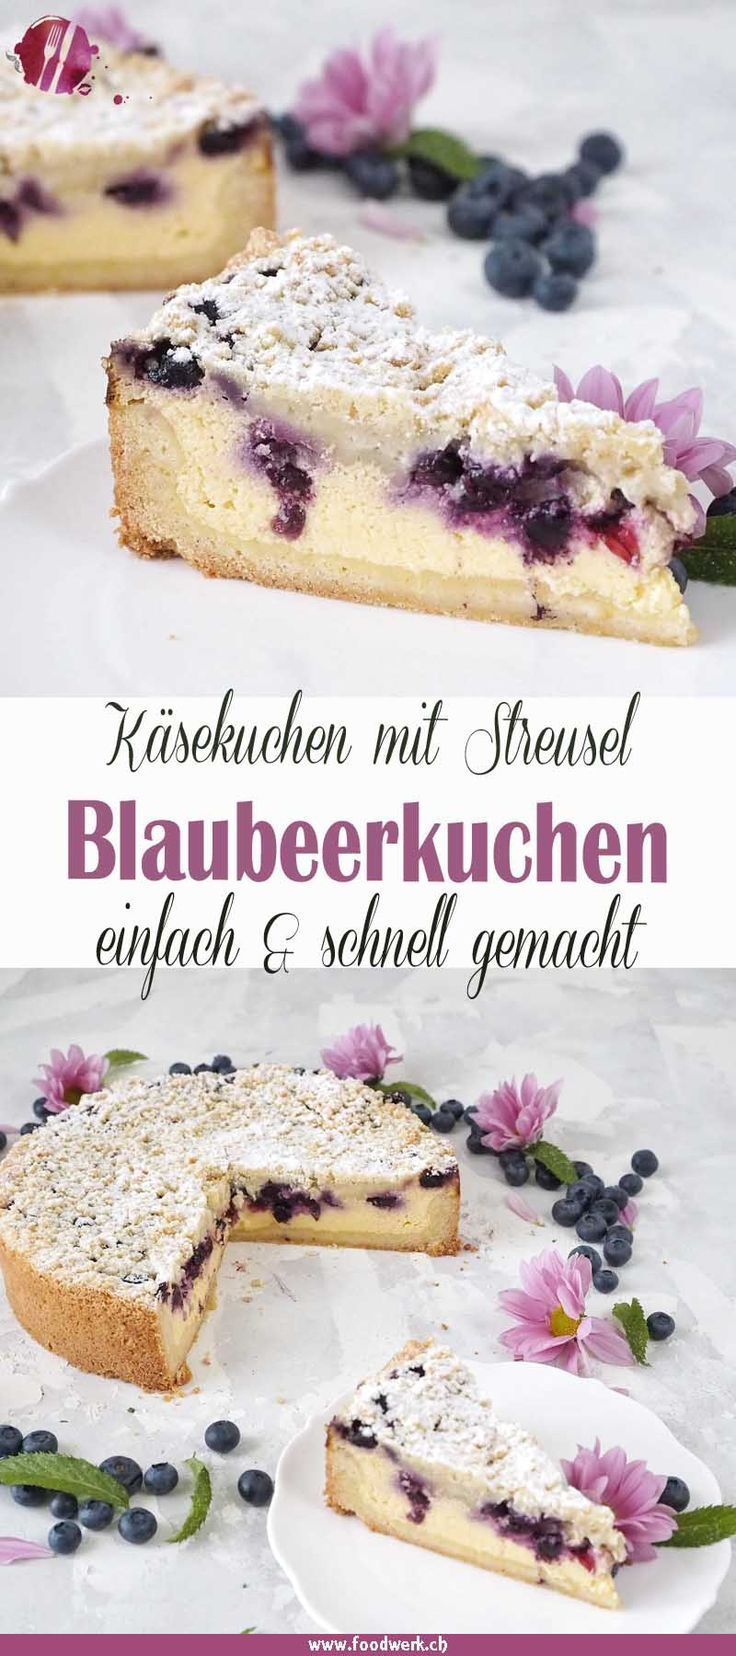 Photo of Best cheesecake: Grandma's baked quark cake with blueberries and sprinkles